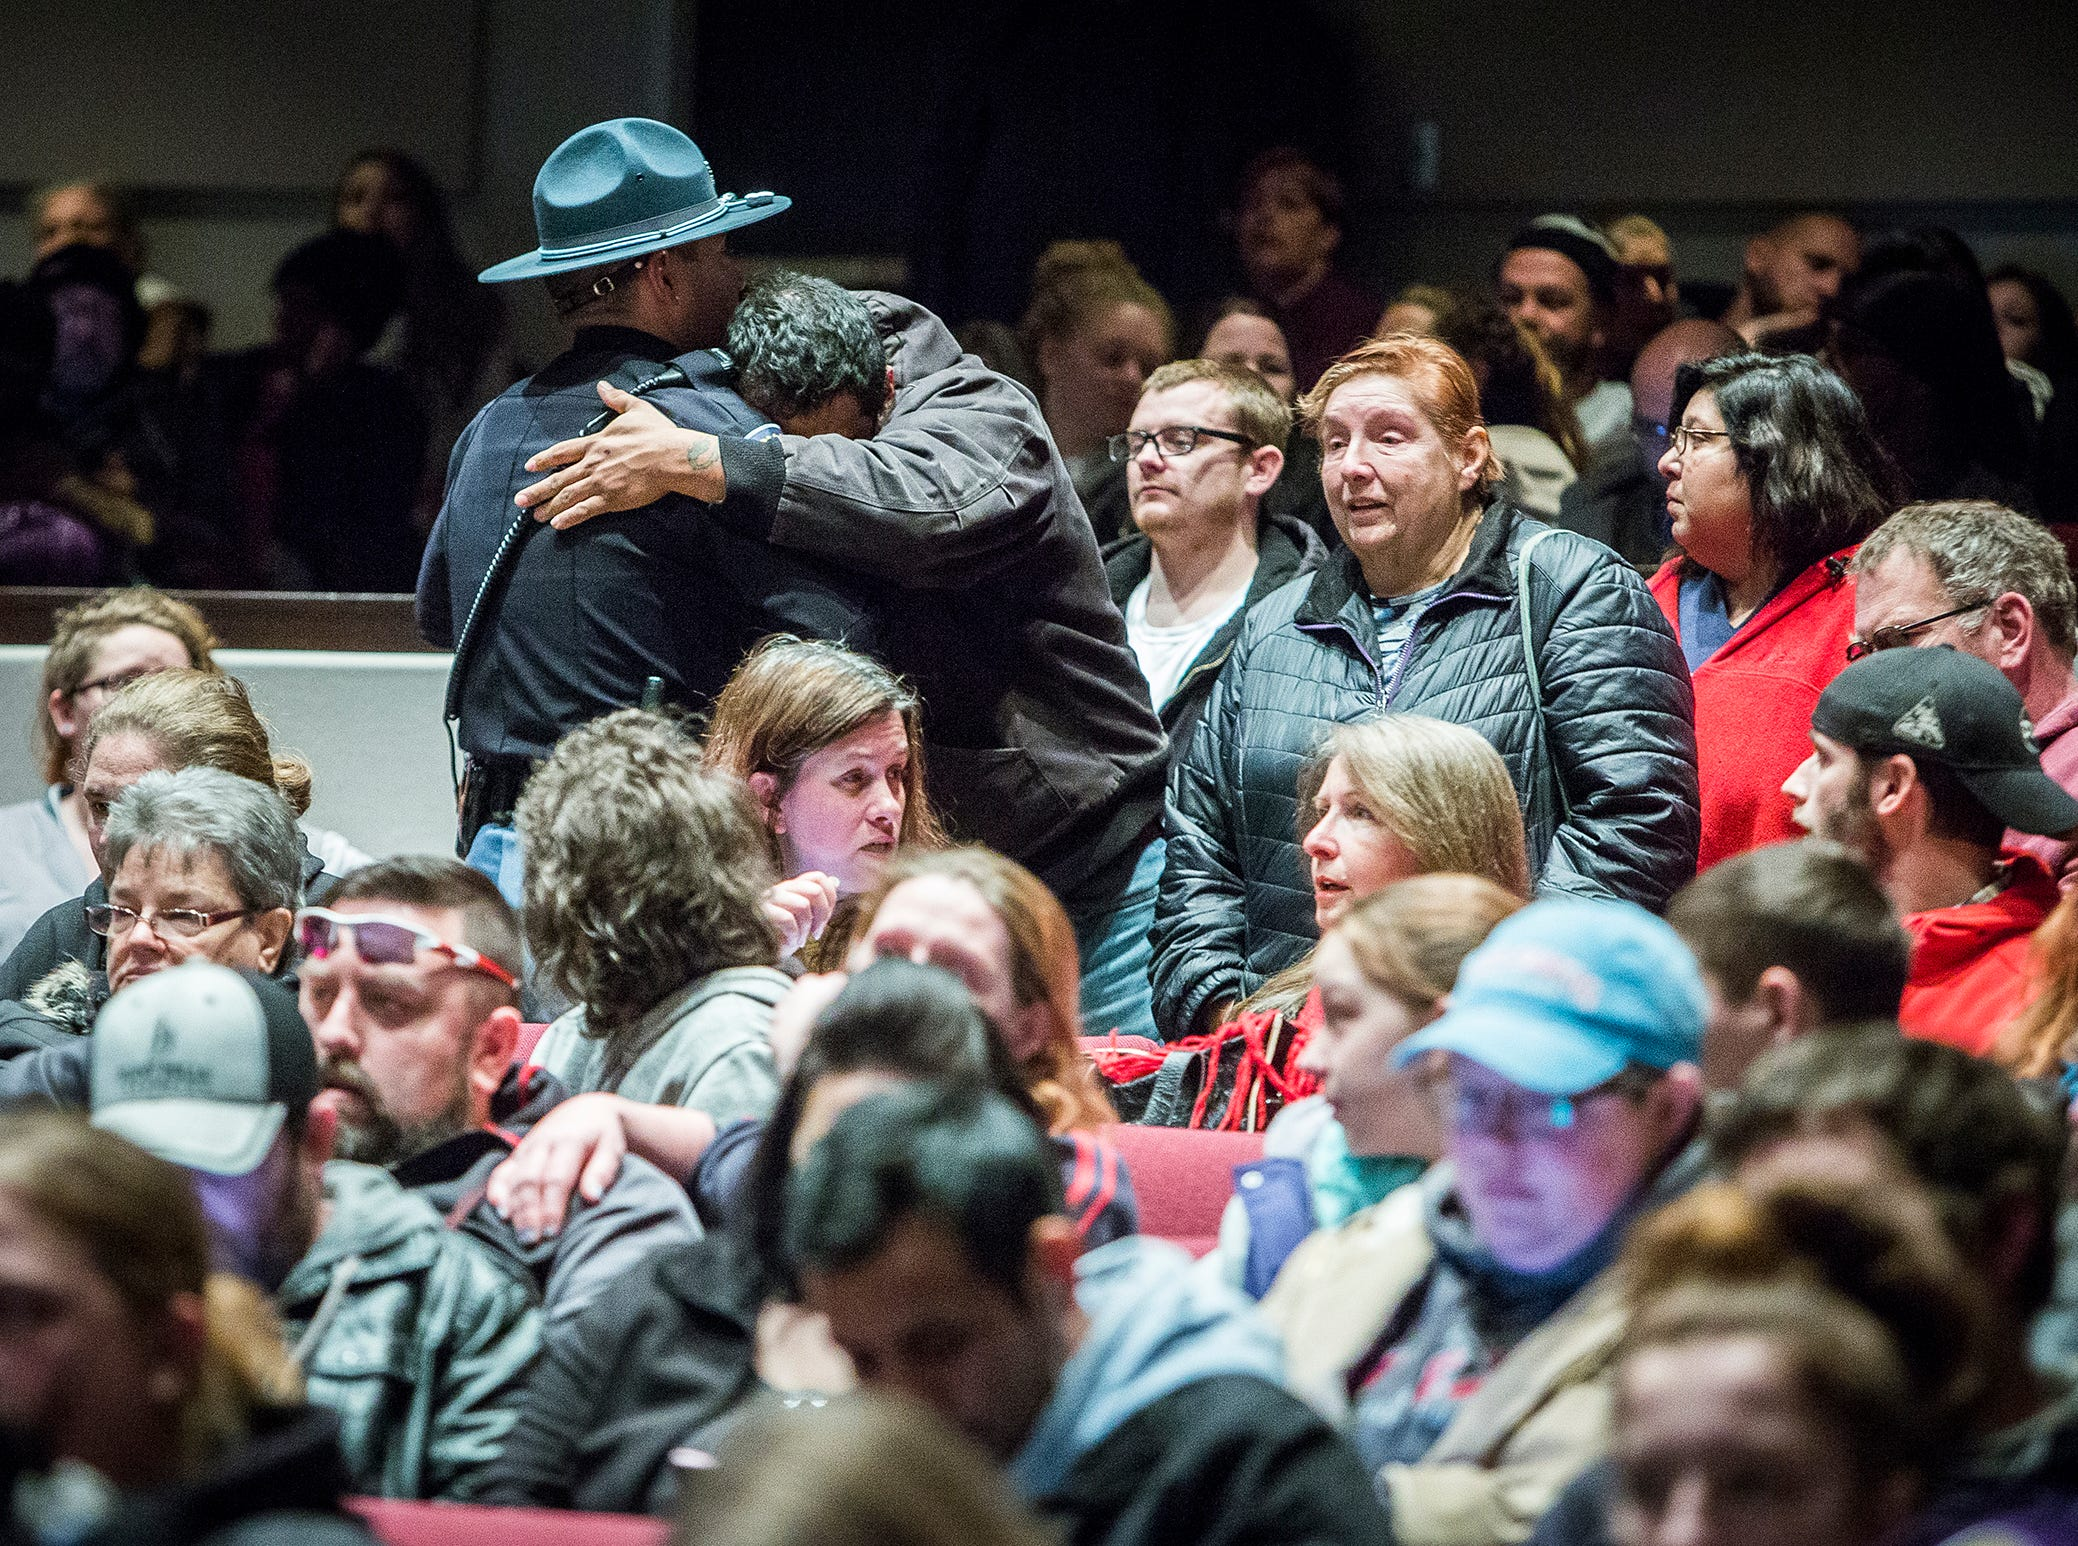 Hundreds of families packed into the Civic Hall Performing Arts Center to wait for their child's name to be called by school officials after a shooting took place at Dennis Intermediate School Thursday morning.